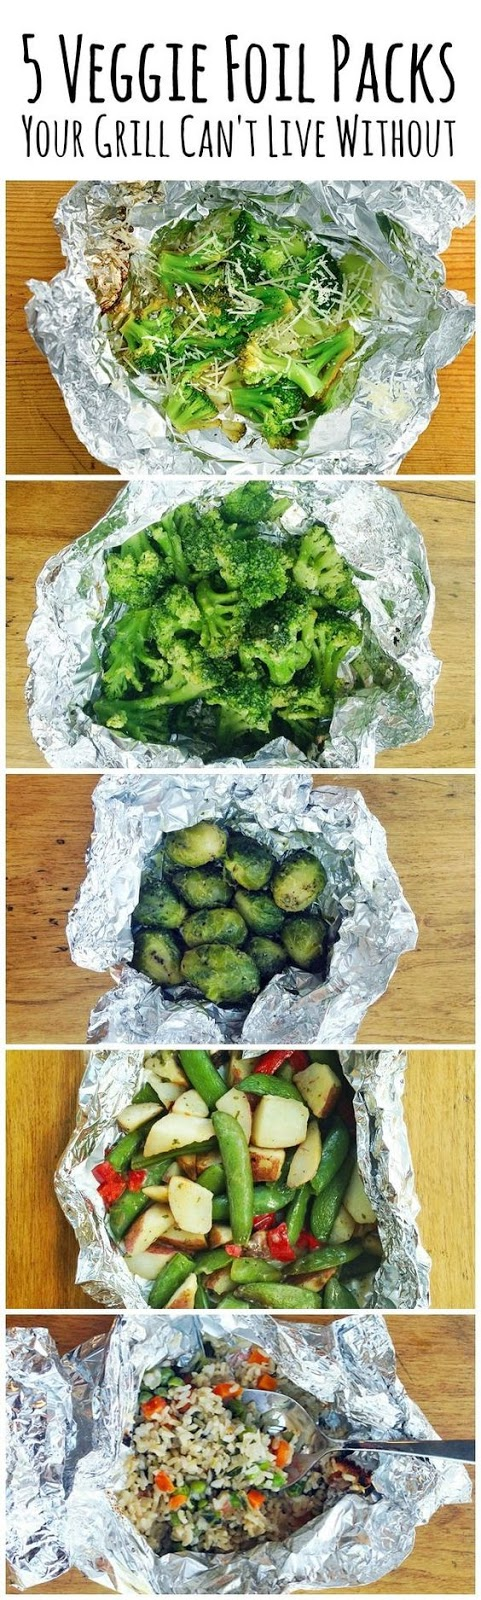 VEGGIE FOIL PACKS YOUR GRILL